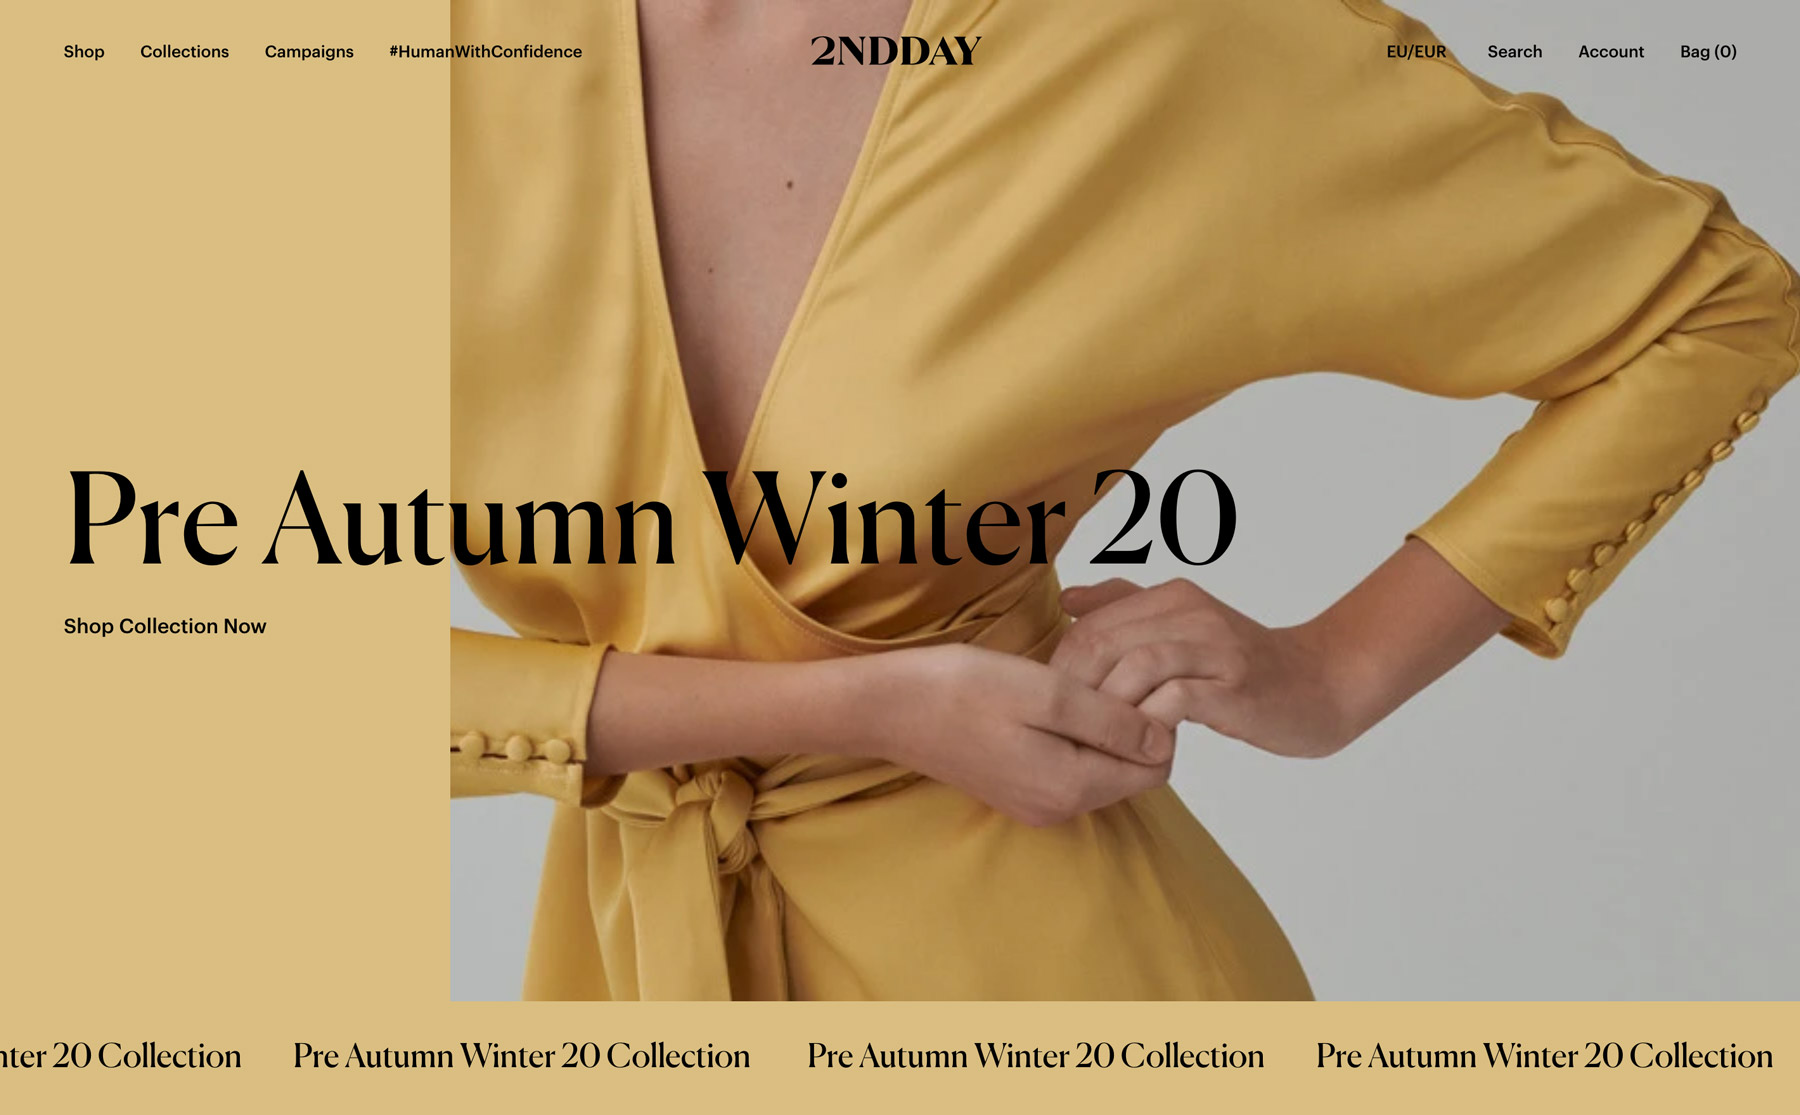 The color of the website design is taken from each collection. This yellow frontpage is made with the yellow from the dress presented on the large image.